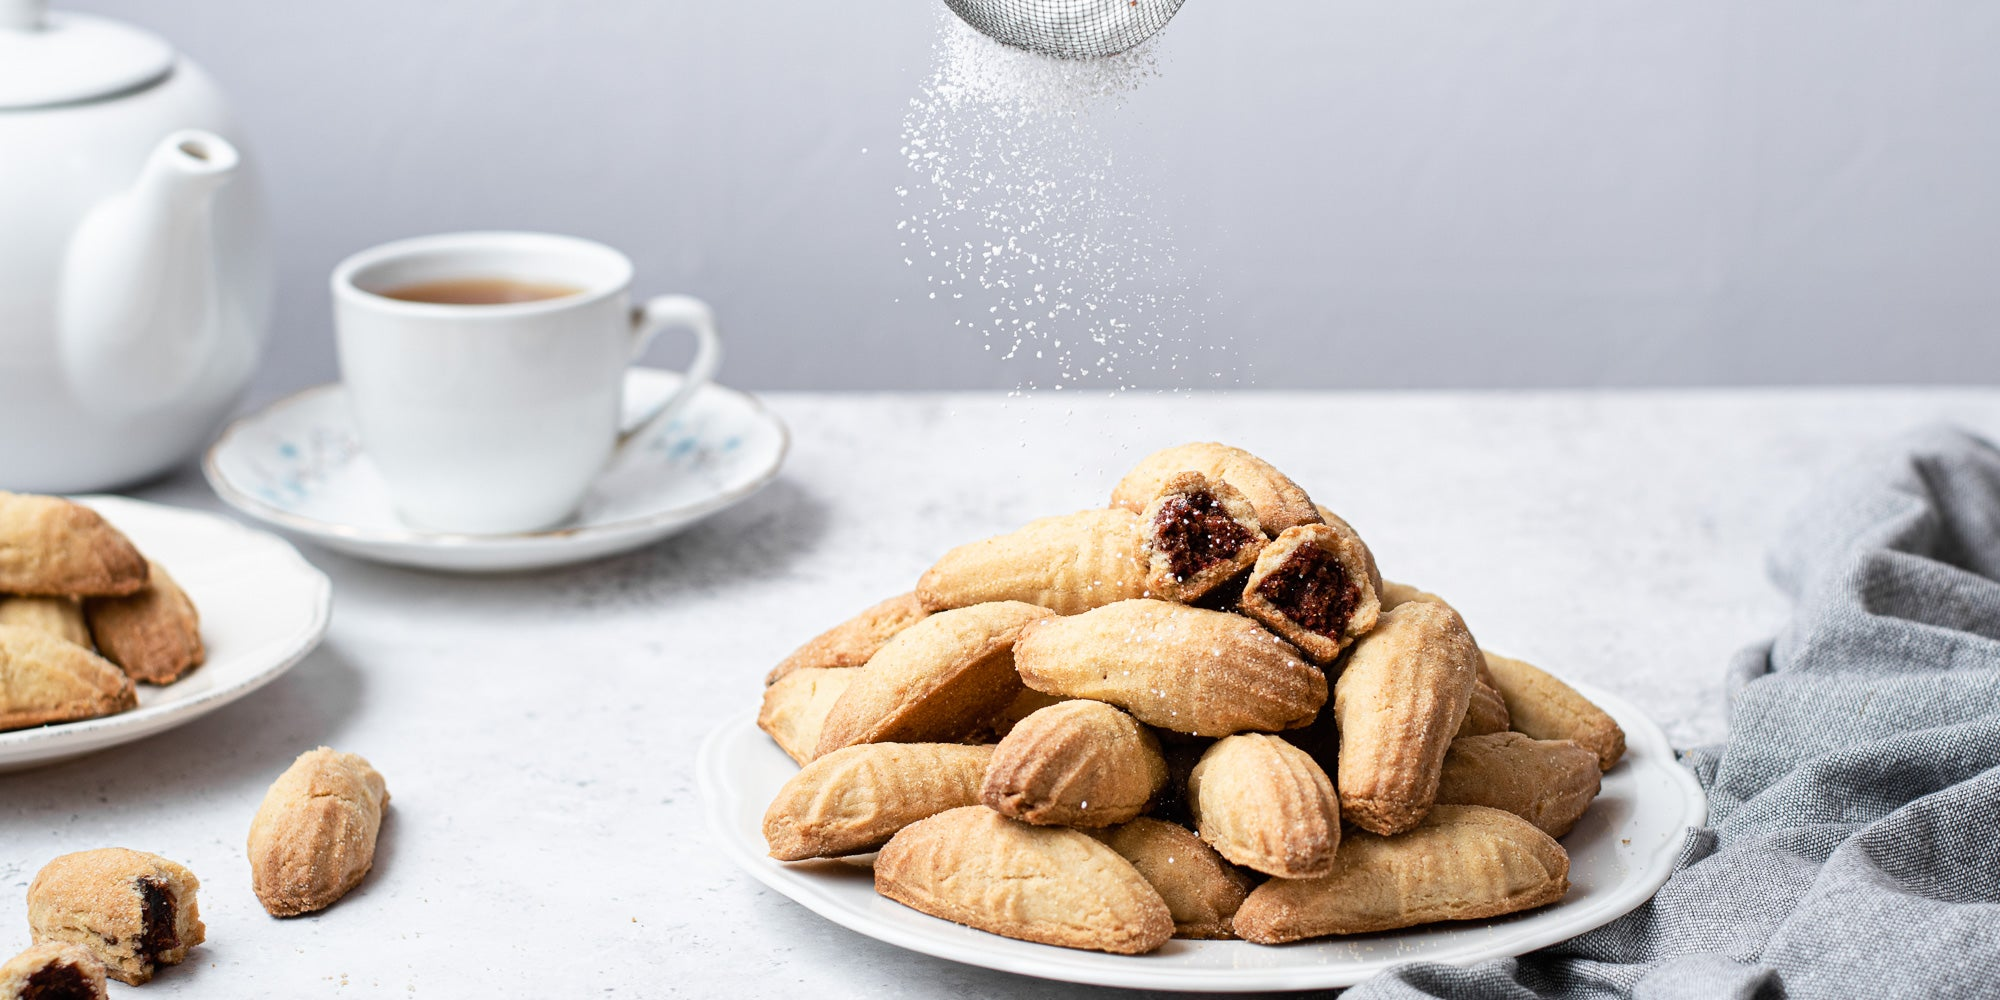 Two plates of Mamoul cookies on white plates, cup of tea in background and icing sugar dusted on top.